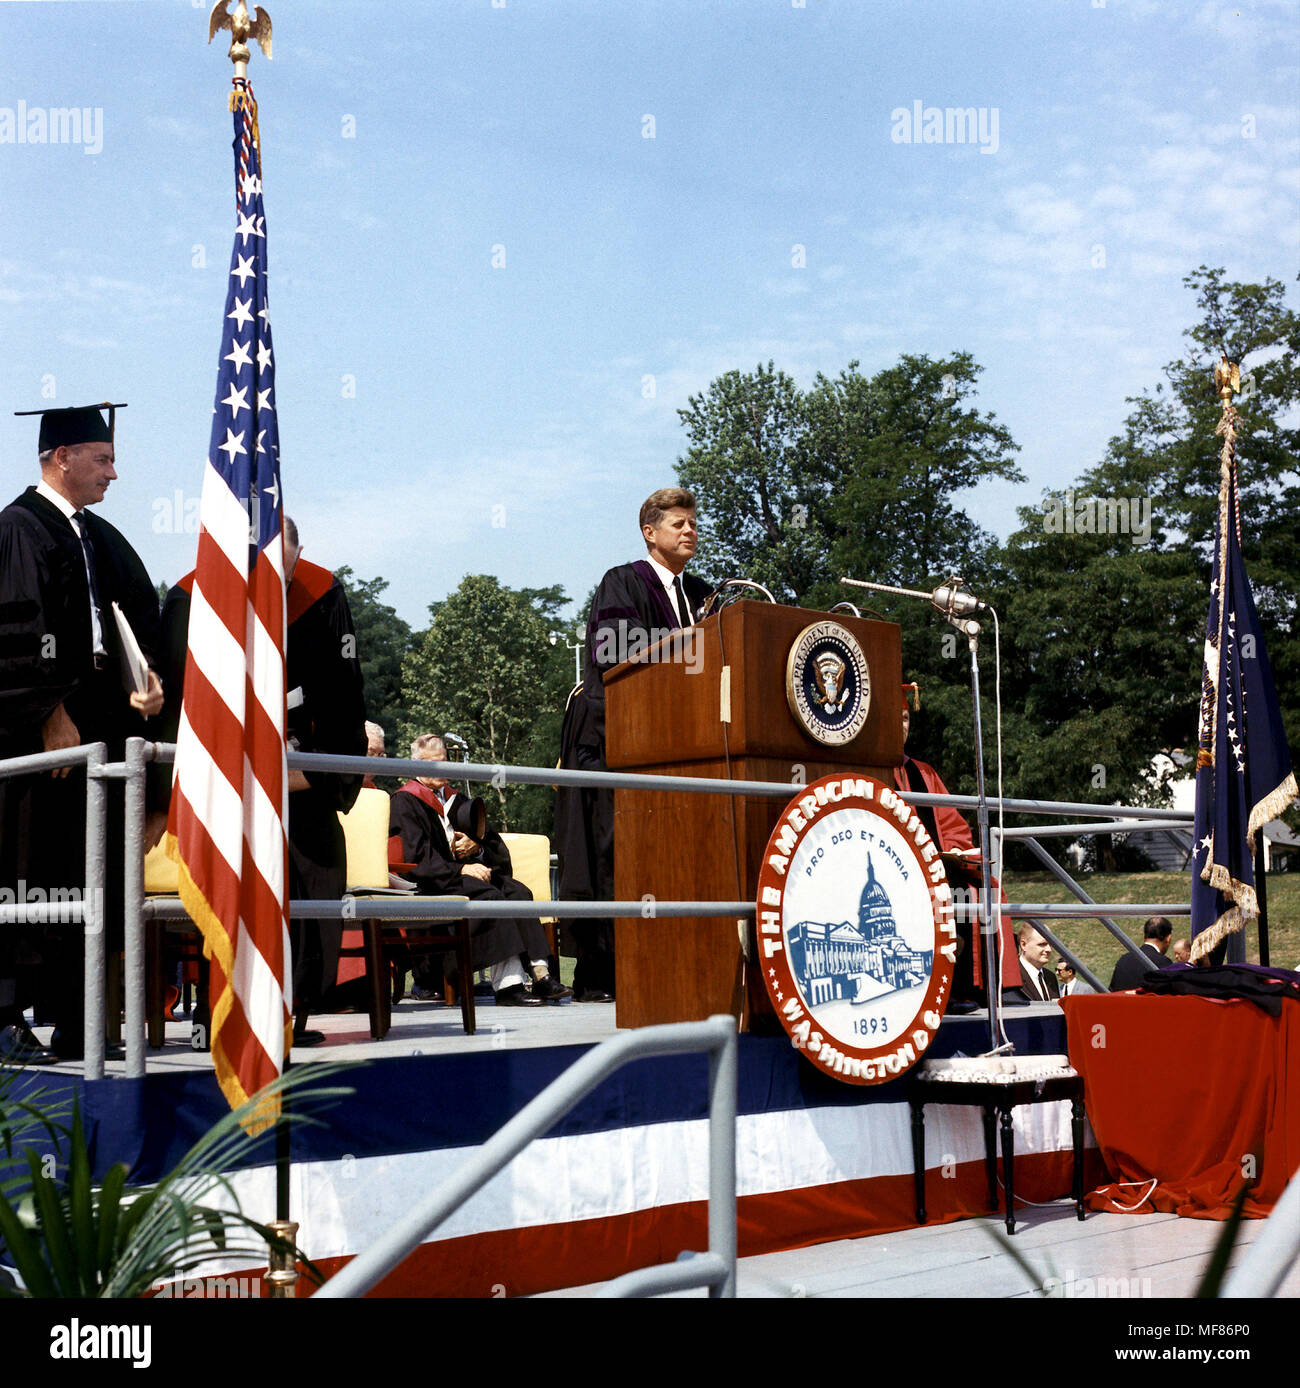 ST-C205-12-63  10 June 1963 Commencement Address at American University, Washington, DC. Please credit 'Cecil Stoughton, White House/John Fitzgerald Kennedy Library, Boston'. - Stock Image